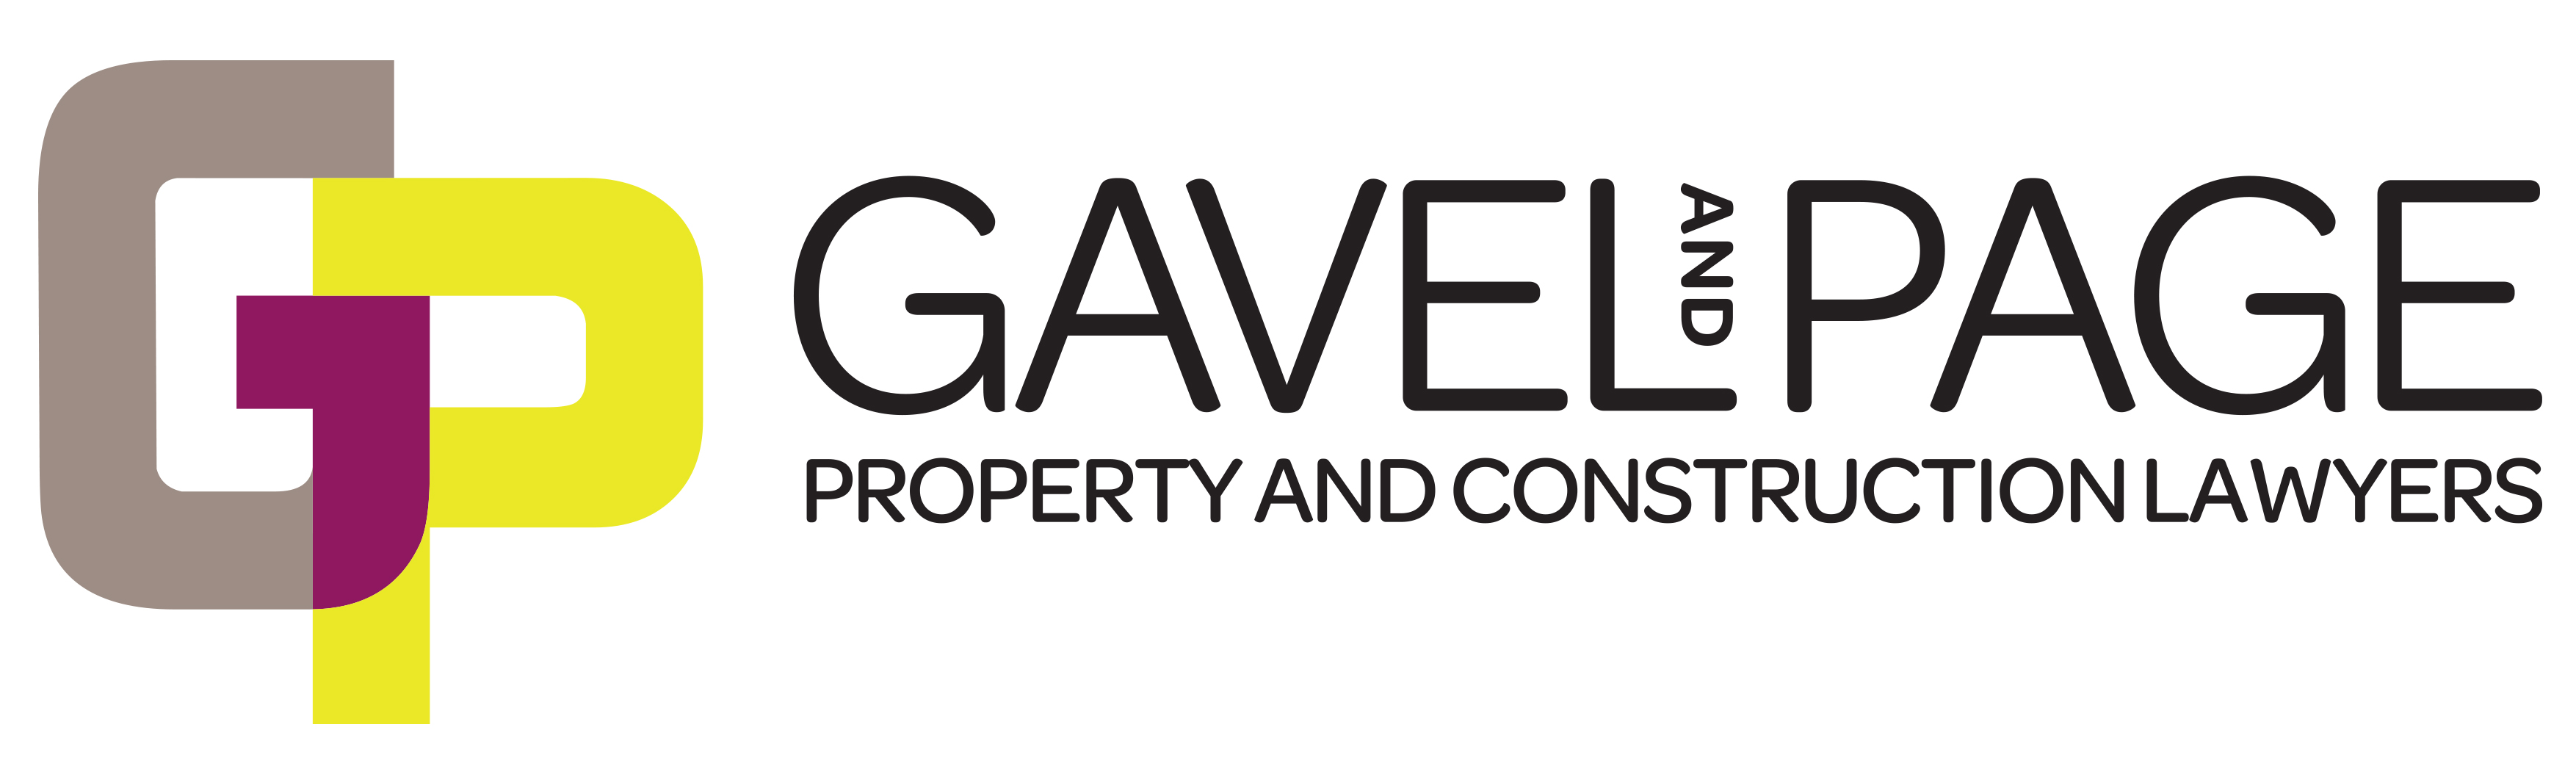 Gavel & Page Lawyers